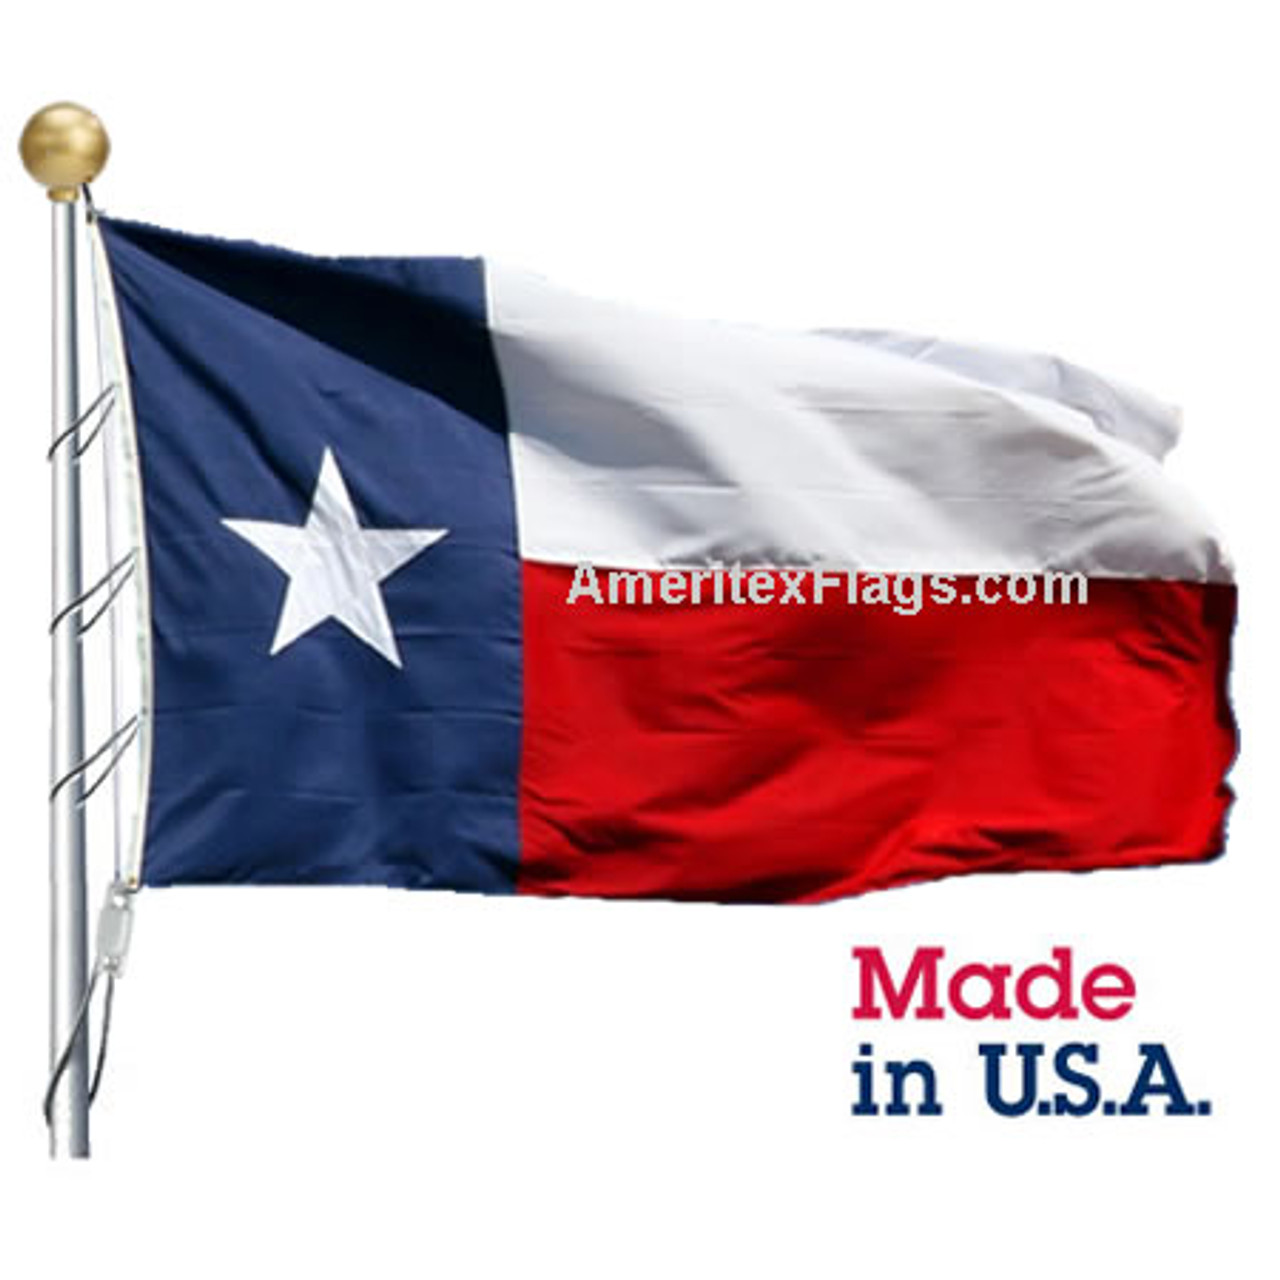 20' x 30' Polyester Texas Flag